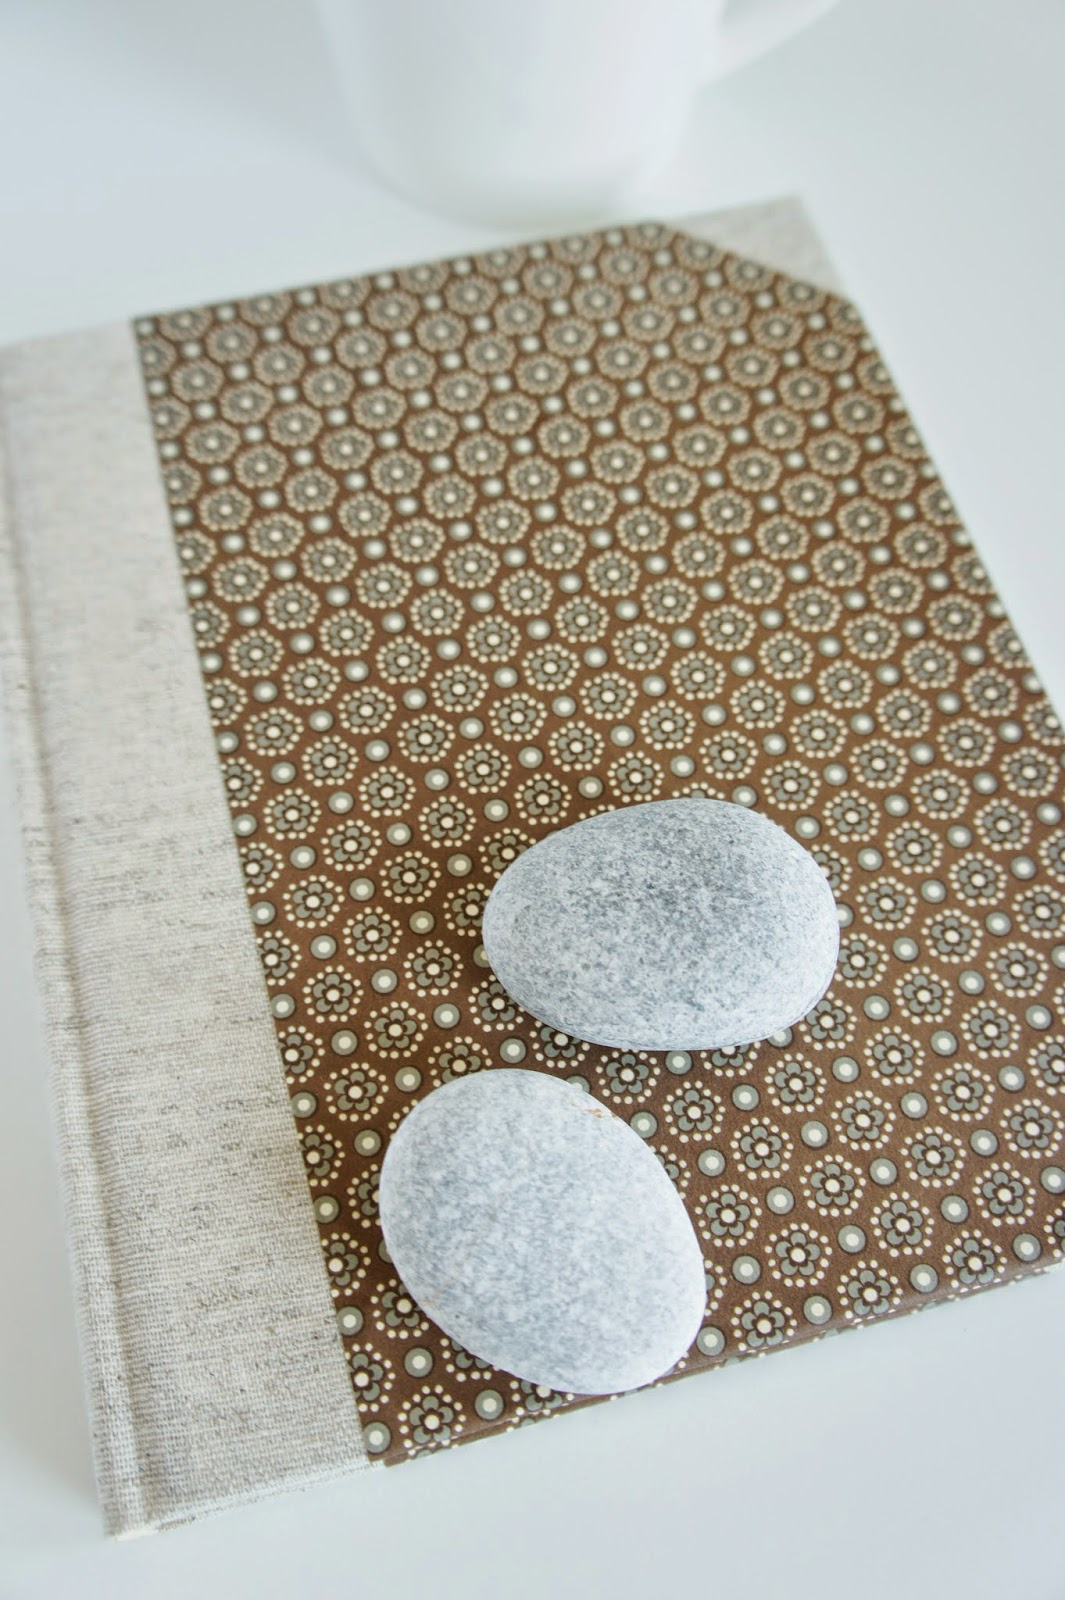 New journal fabric backing paper cover